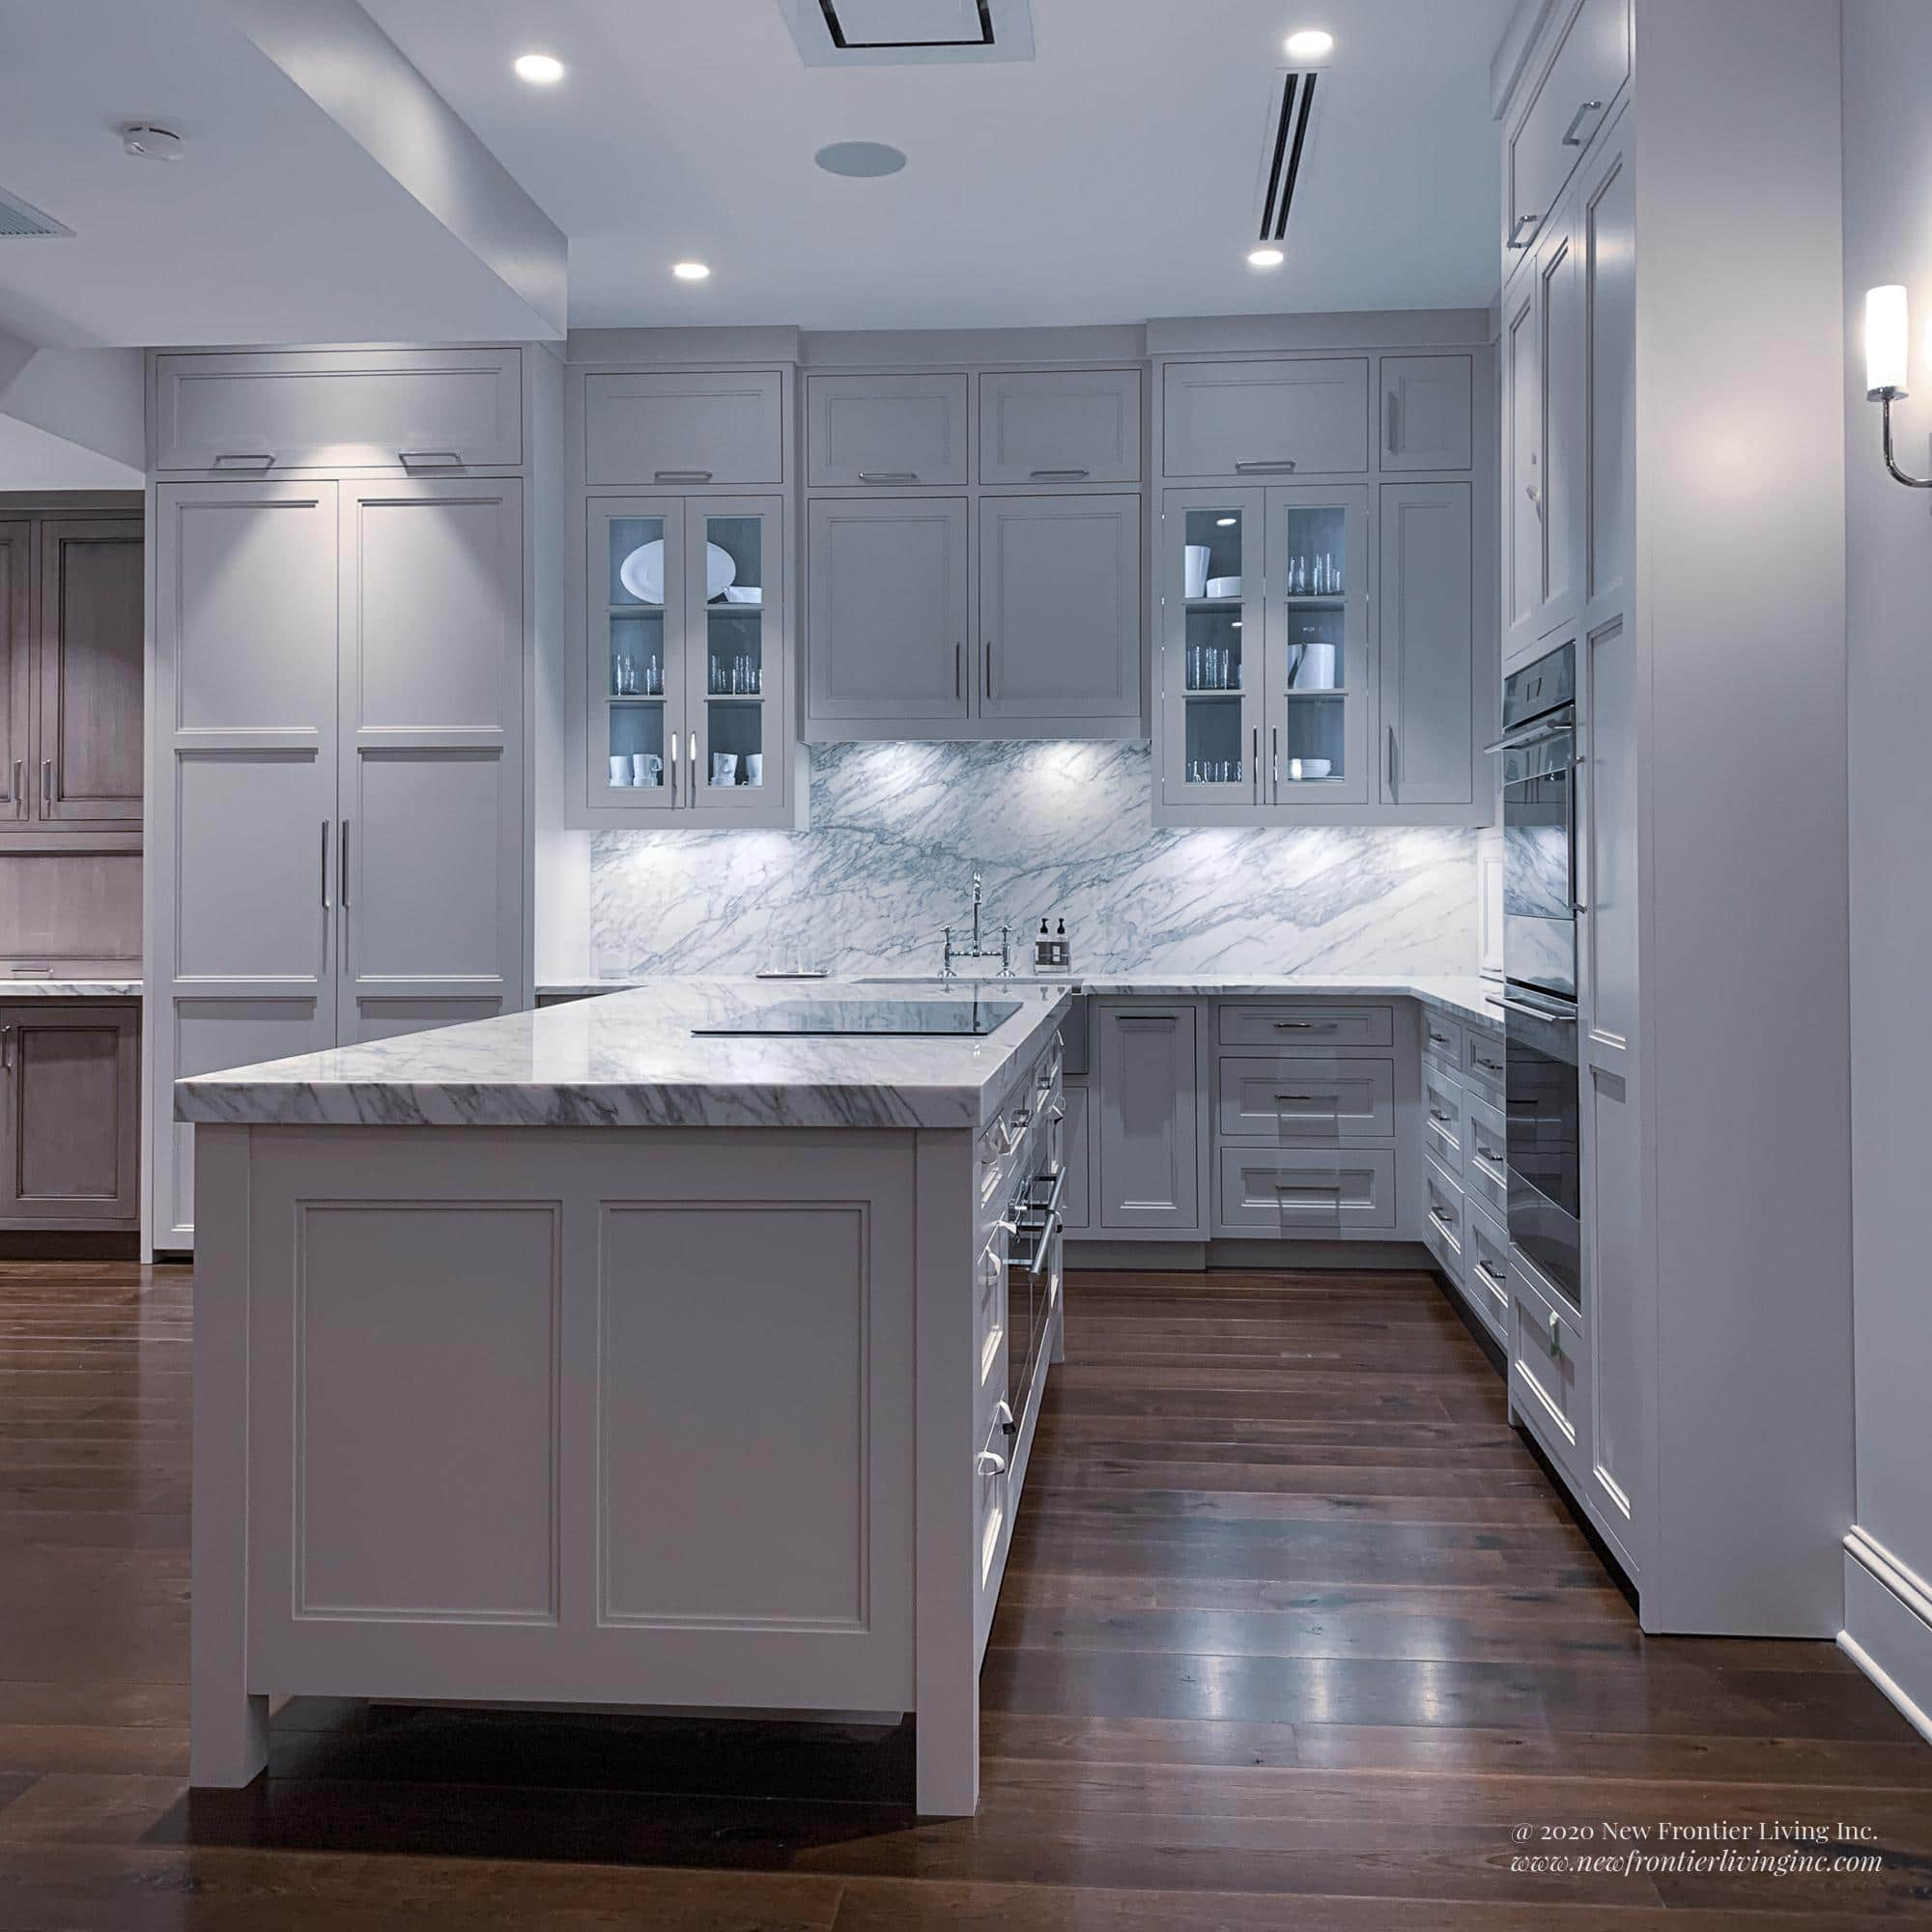 Pure white kitchen island and semi-glass upper cabinetry on the wall